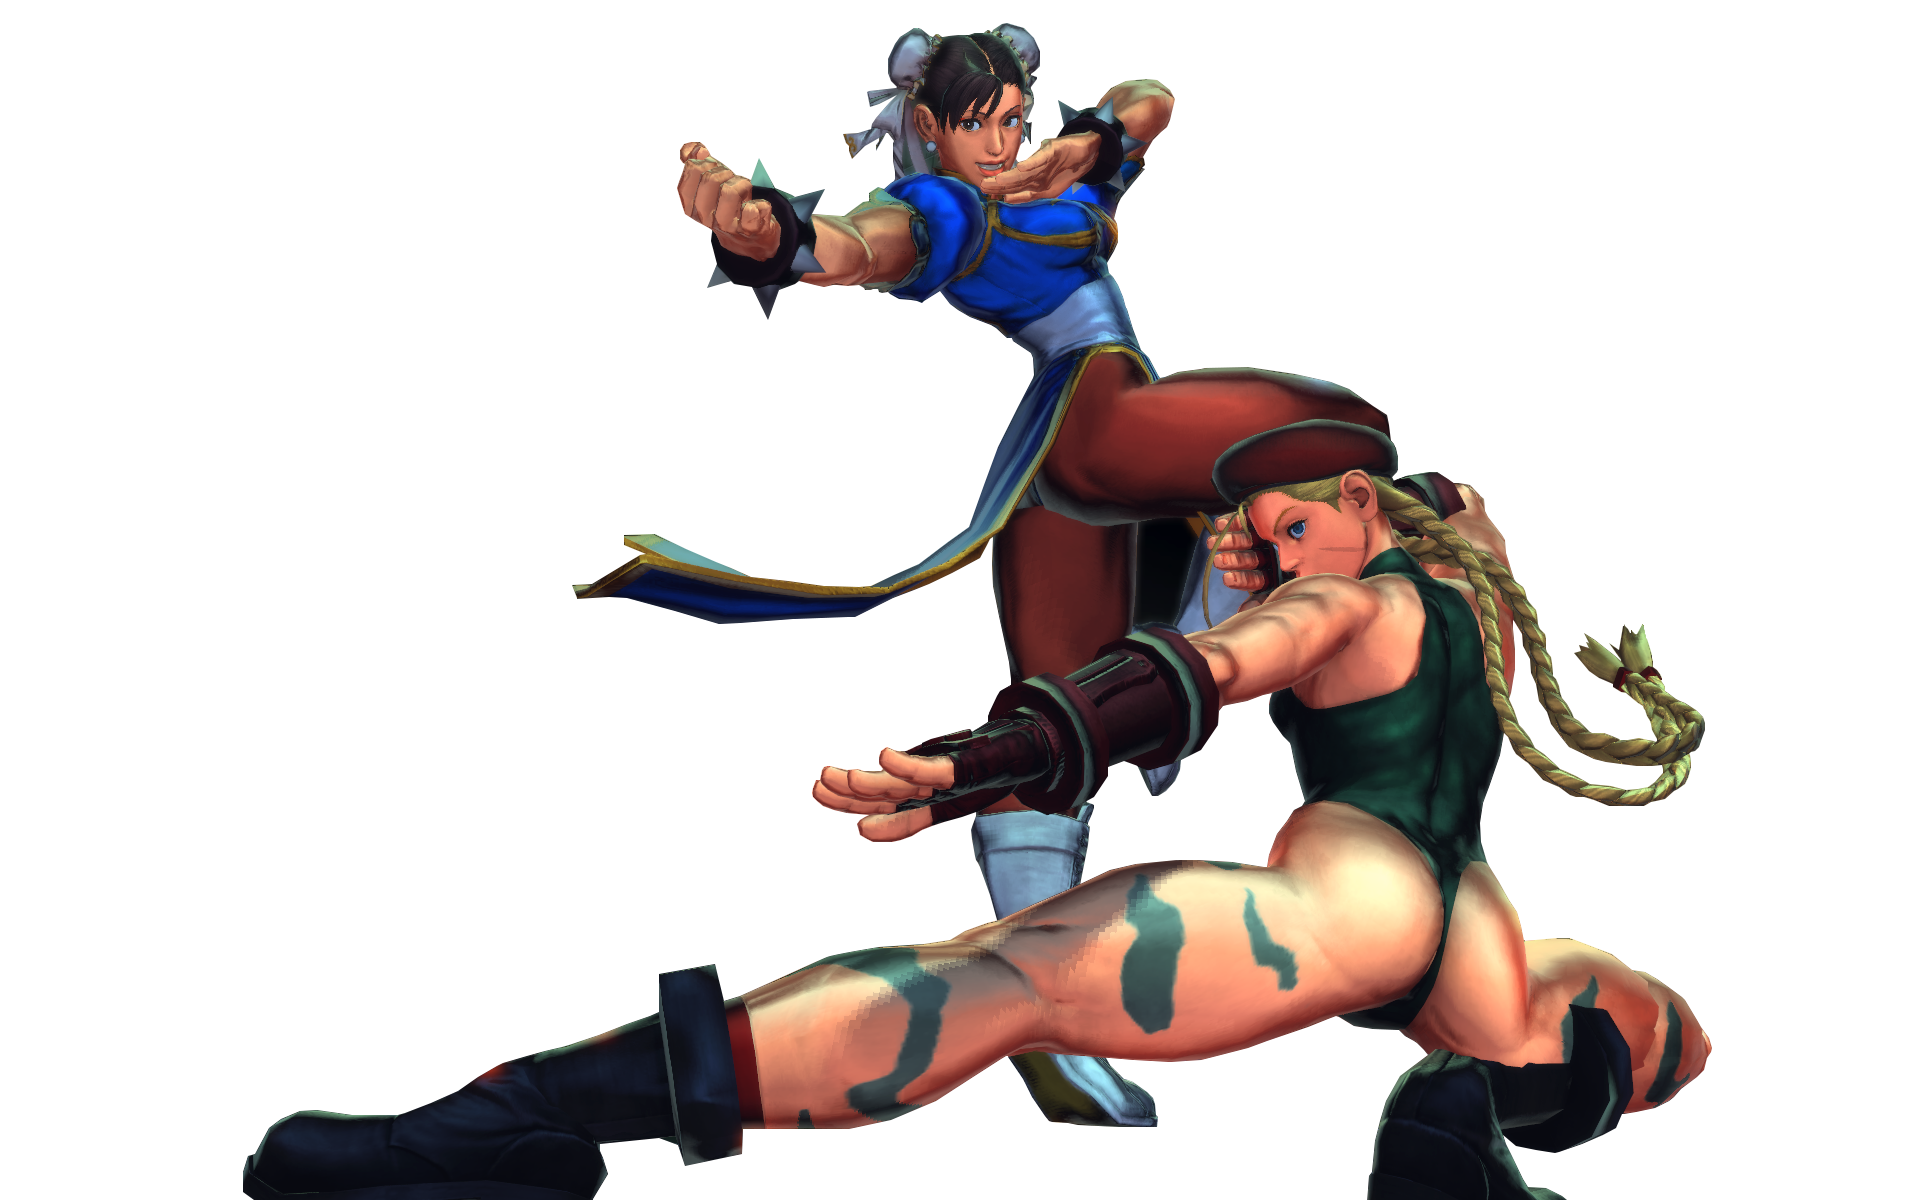 SFxT Screenshot Render by Corvasce1982